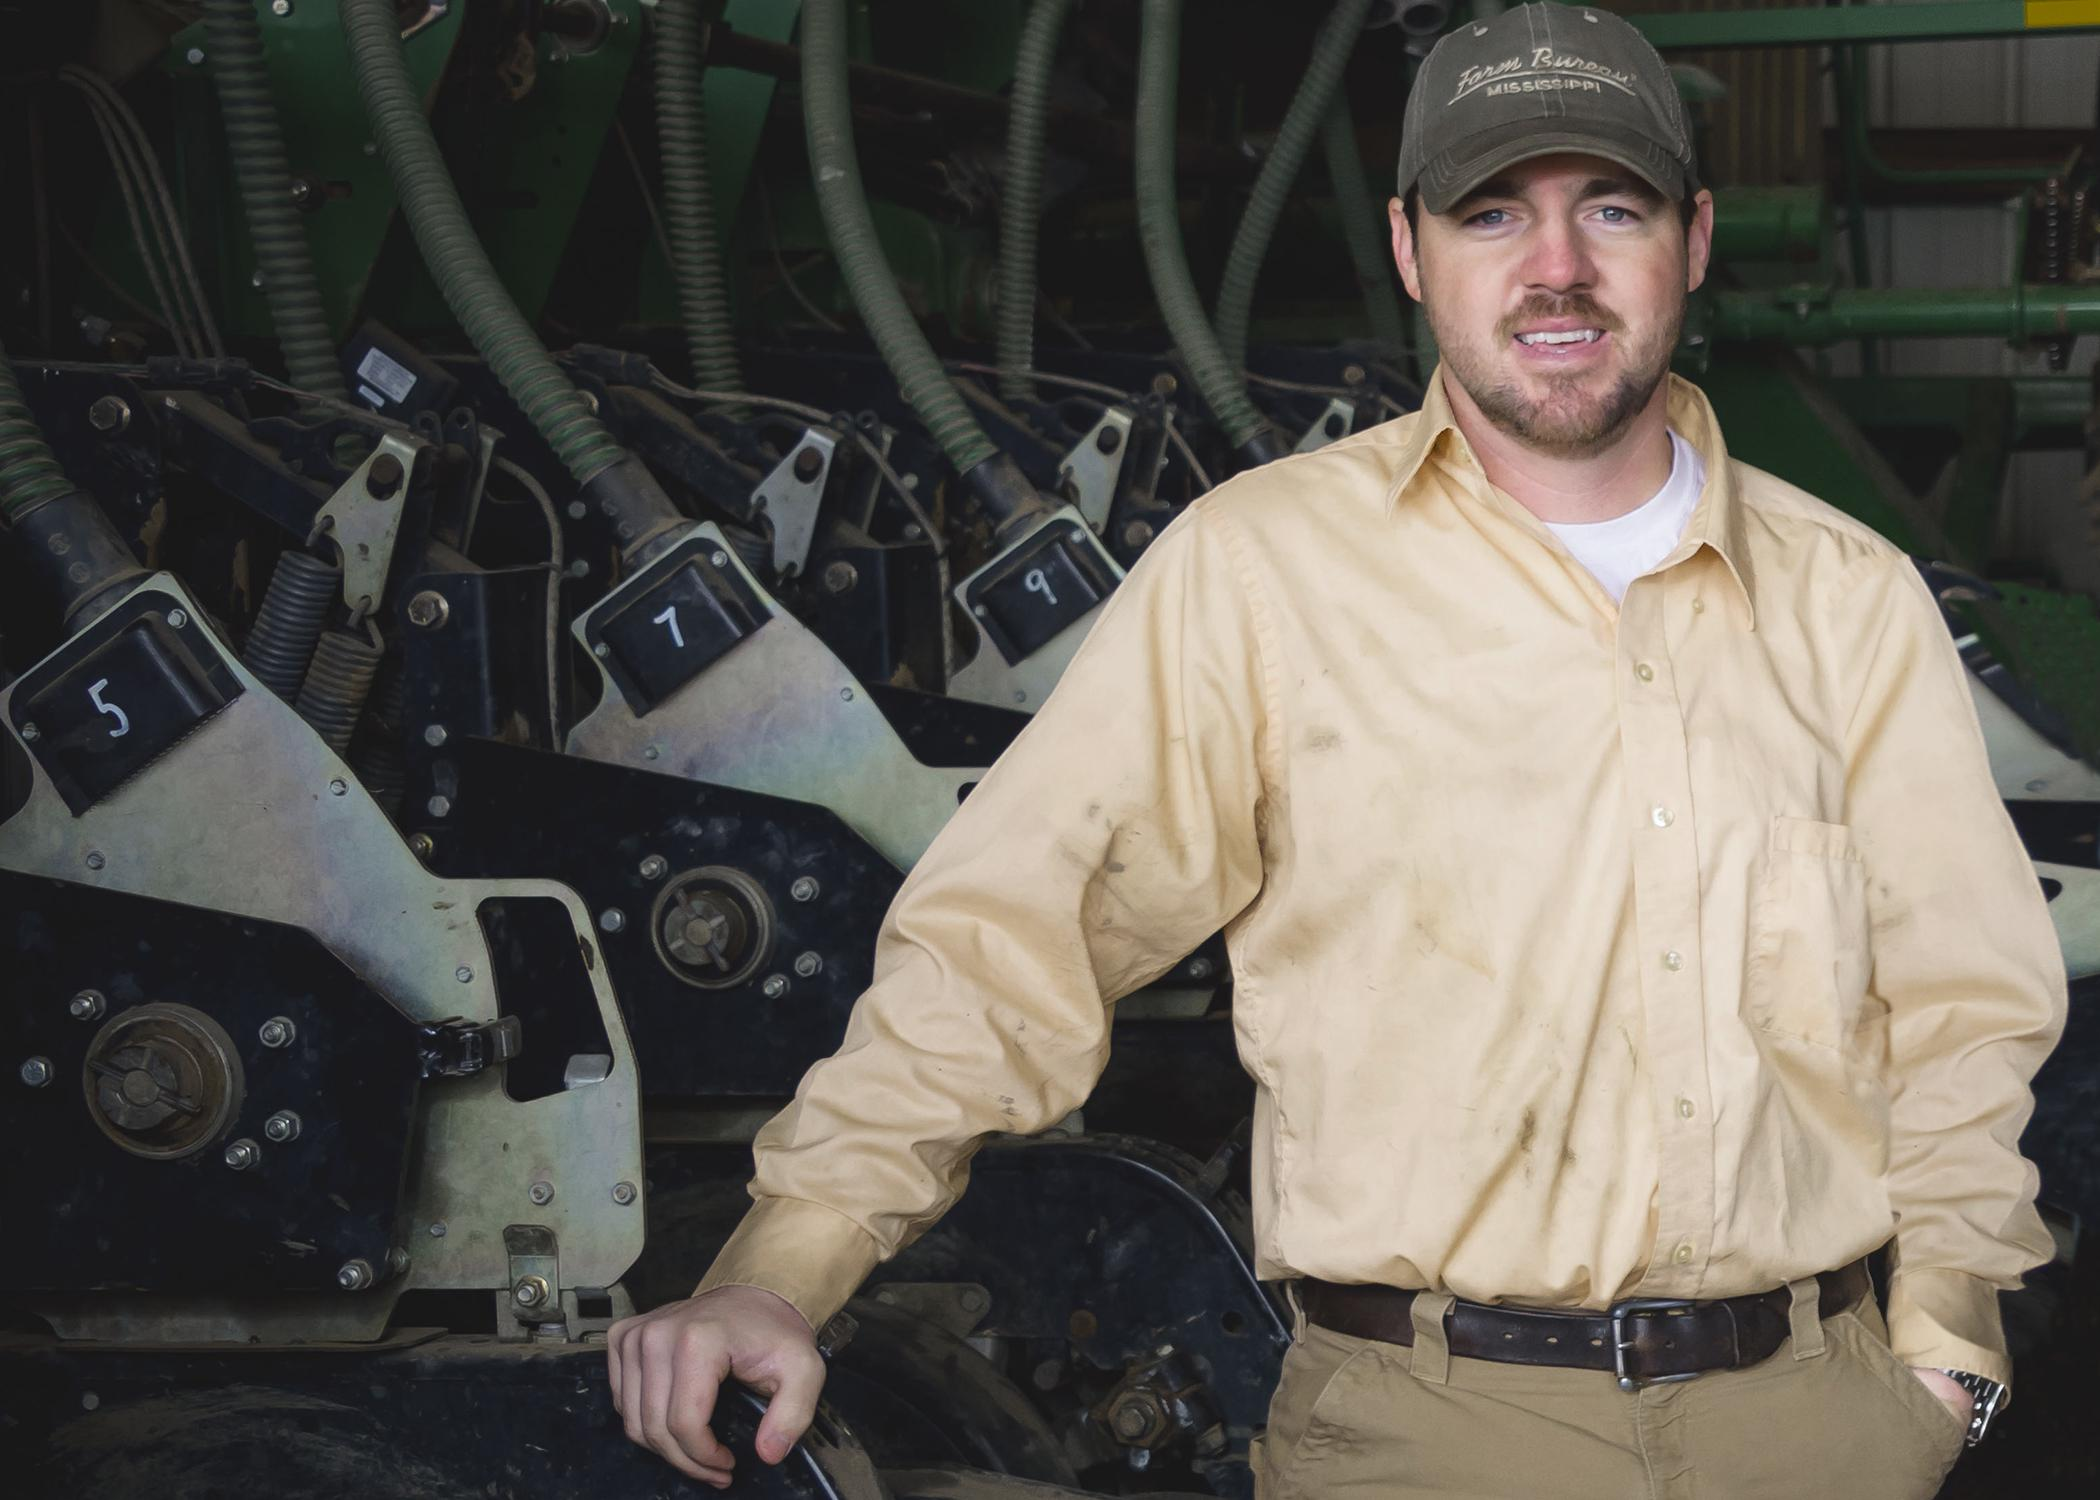 Judd Davis' education did not stop when he graduated from Mississippi State University in 2007, and he continues learning how to be a better farmer on his family's land in Bolivar County. This photo was taken on his farm near Shaw, Mississippi, on Feb. 27, 2015. (Photo by MSU Ag Communications/Kevin Hudson)